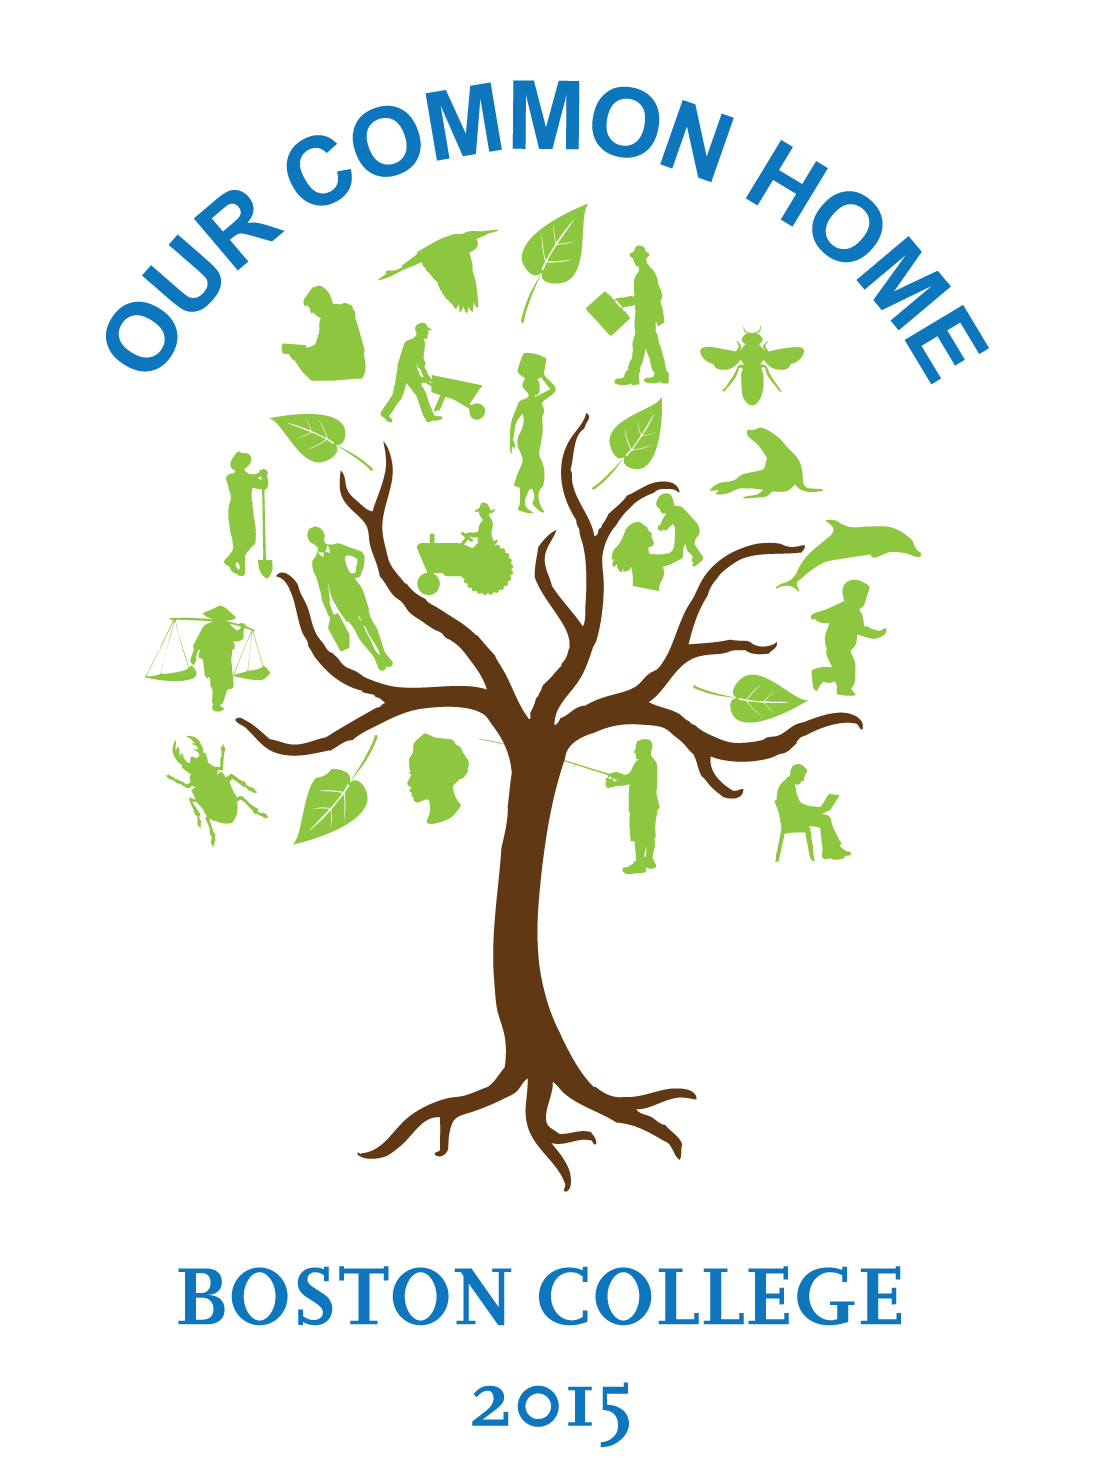 Our Common Home event logo.  Tree with people and animals as leaves